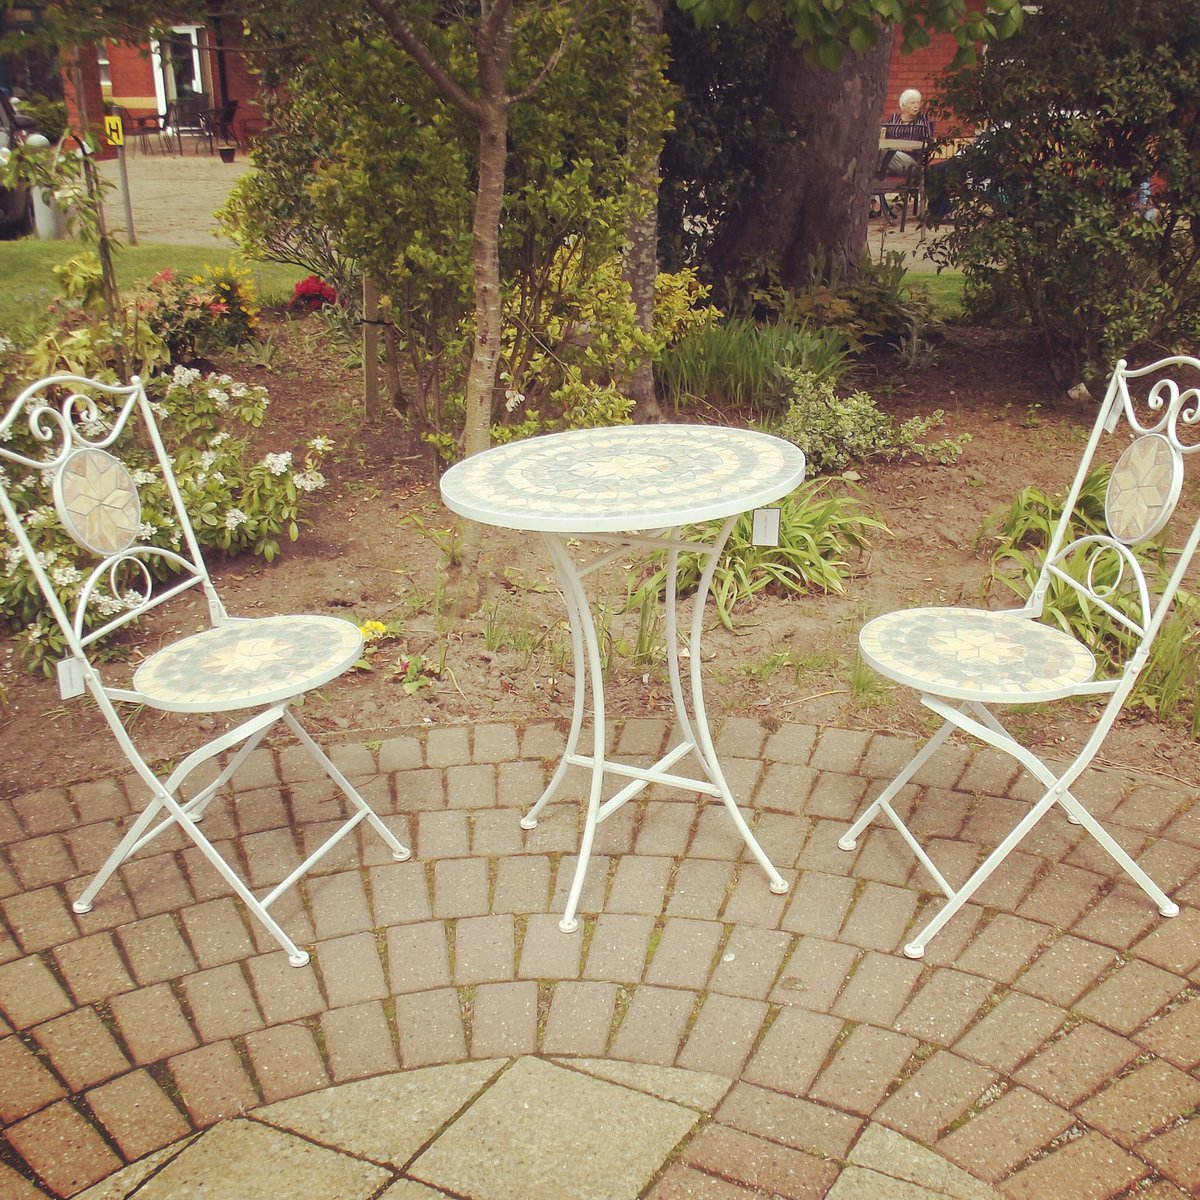 Wirral Hospice On Twitter 99 Mosaic Gardentable 2x Chairs On Our Ebay Https T Co Mtdvpfoepw Loveshopping Shopping Bargain Wirralhospice Wirral Garden Summer Sun Https T Co H9b8hzc04m